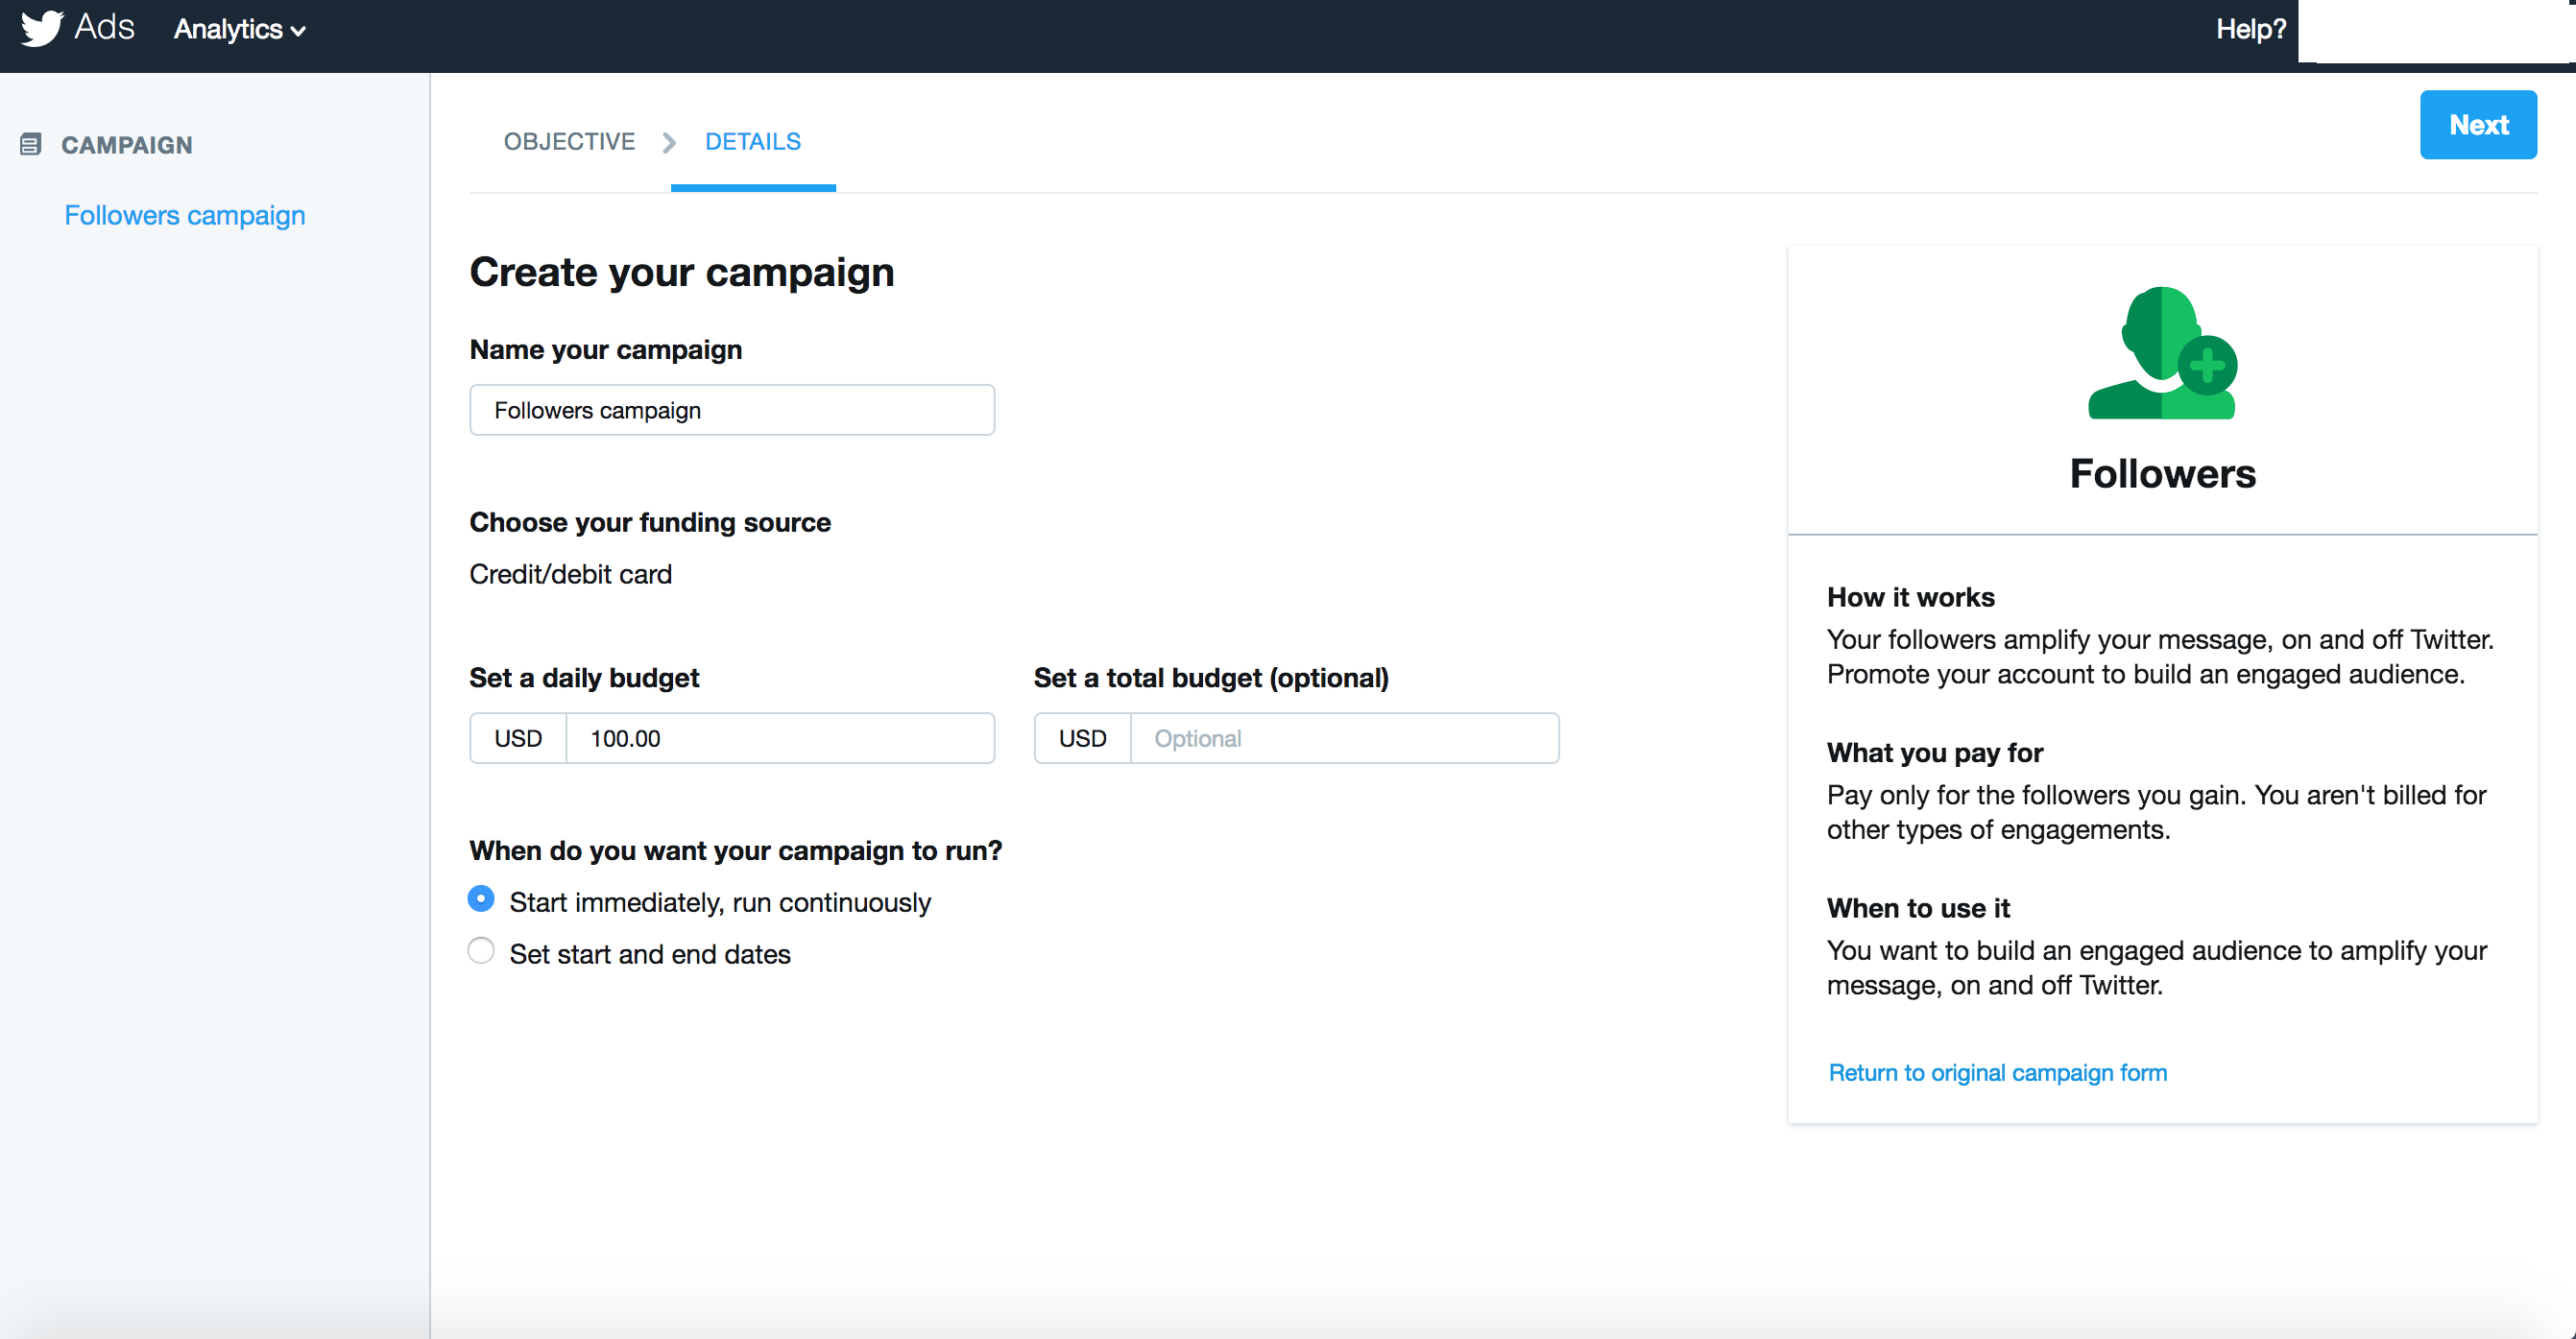 Allows marketers to set daily or total budgets for custom ad campaigns